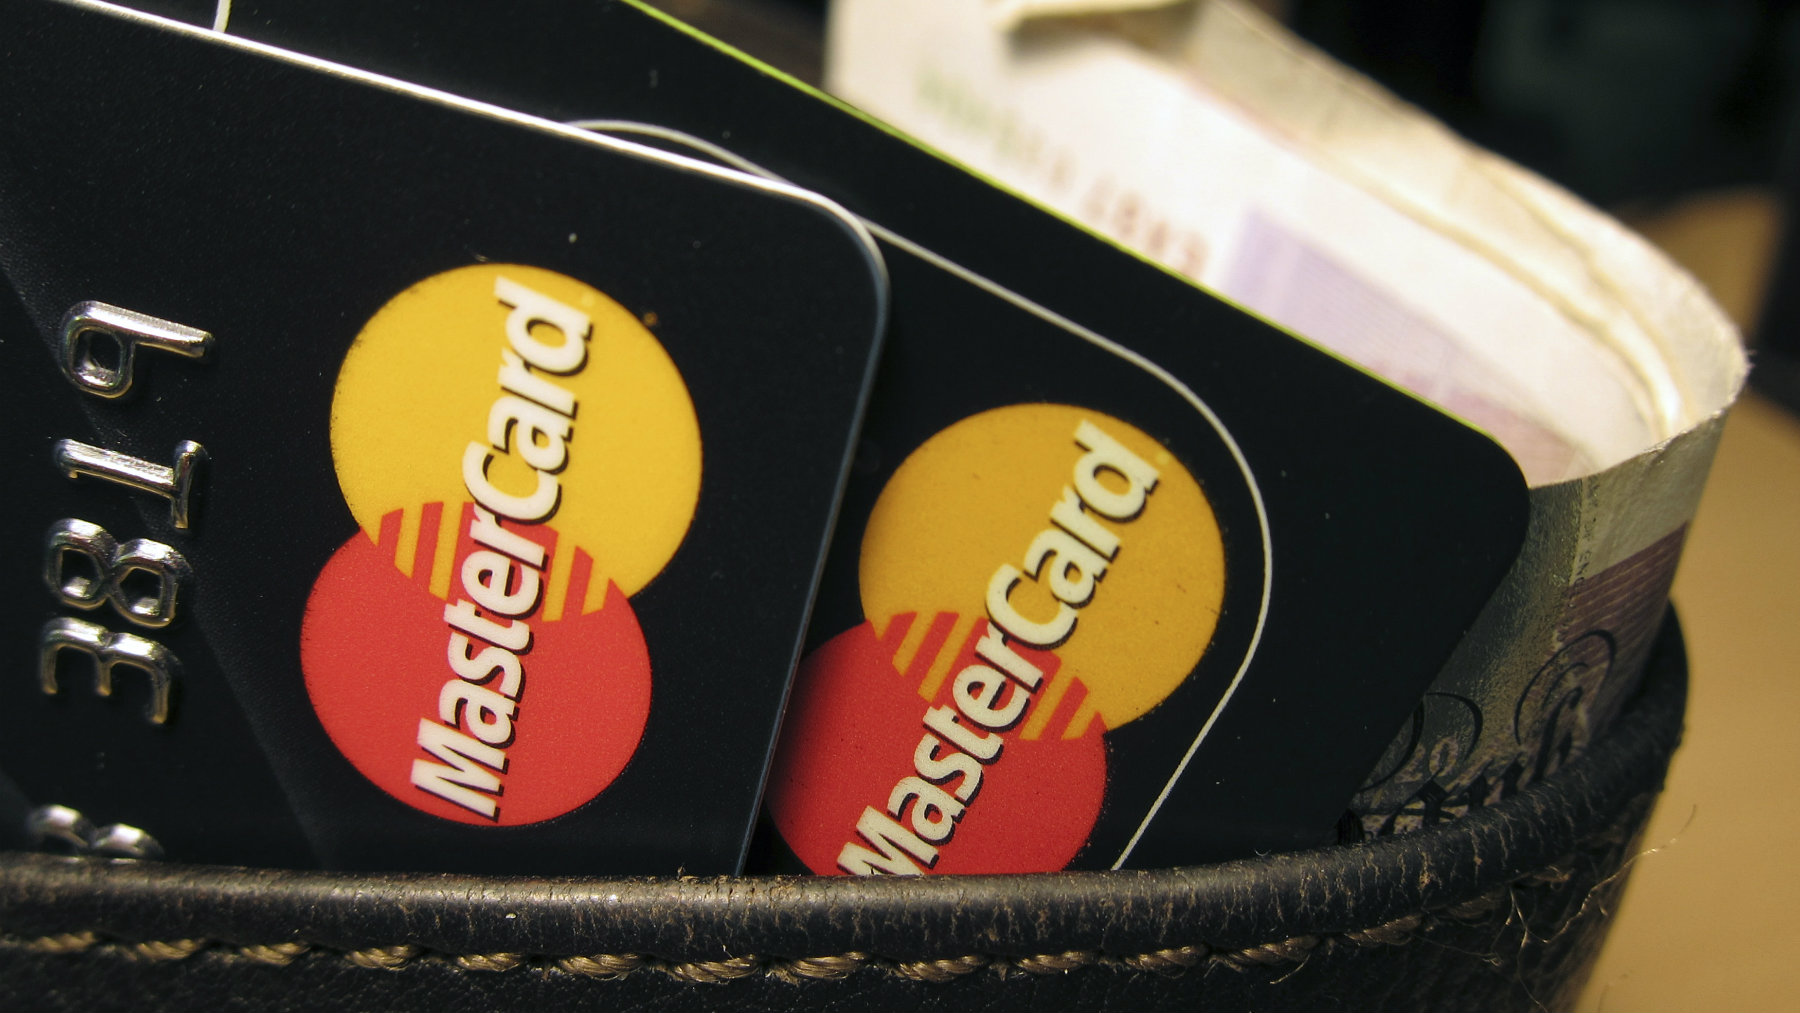 MasterCard credit cards are seen in this illustrative photograph taken in London December 8, 2010. Hackers have crashed the website of credit card firm MasterCard in apparent retaliation for its blocking of donations to the Wikileaks website it was reported on Wednesday. REUTERS/Jonathan Bainbridge